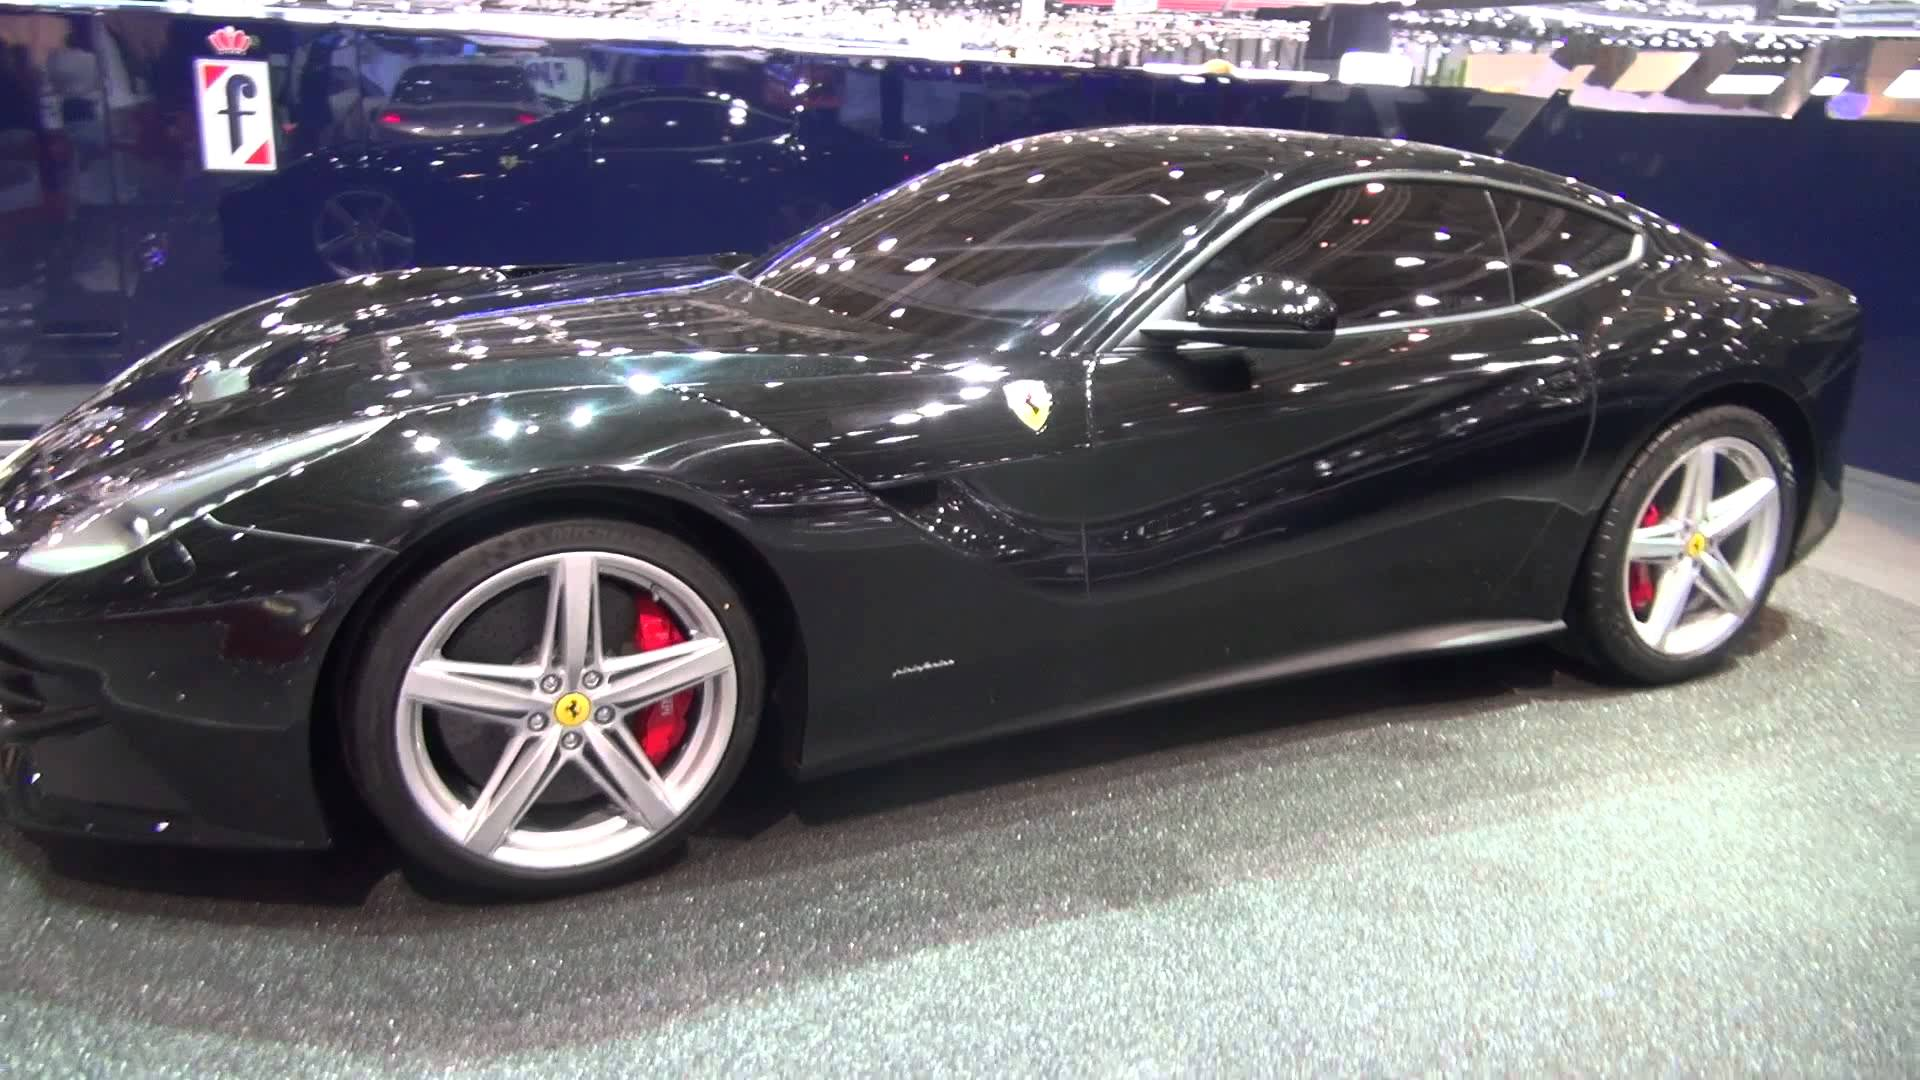 Ferrari F12 Berlinetta black #4